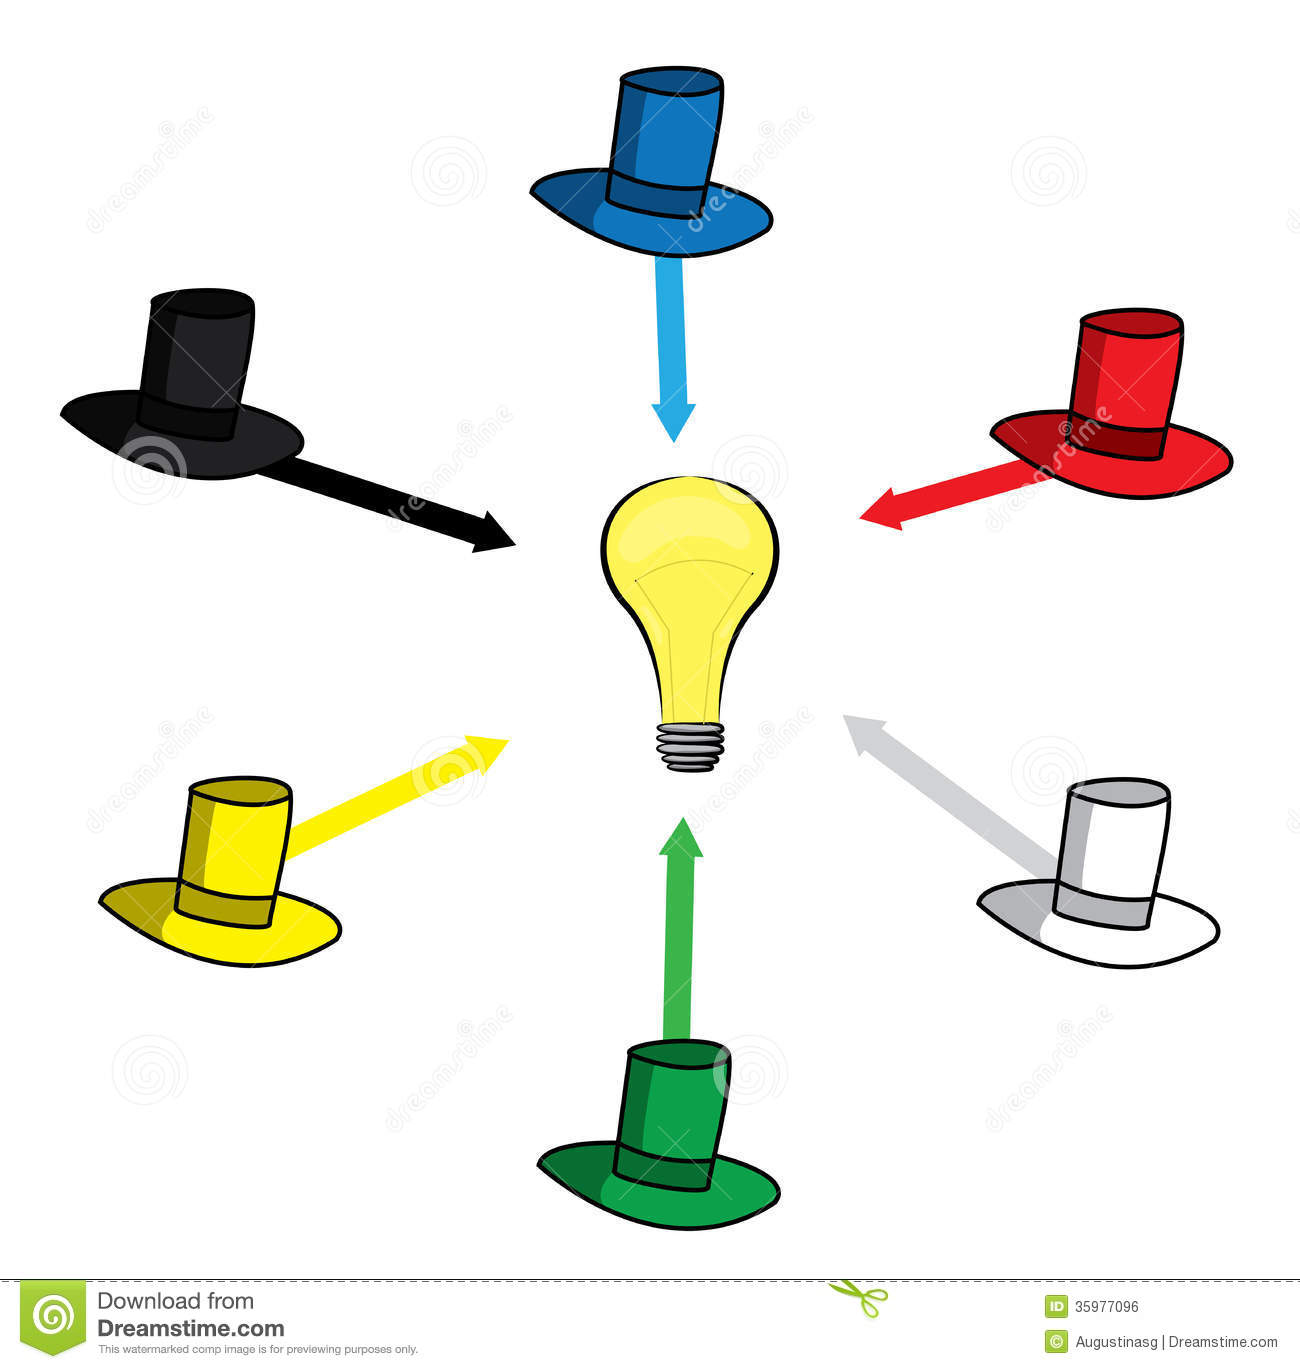 6 thinking hats clipart vector library Thinking hat clipart - ClipartFest vector library